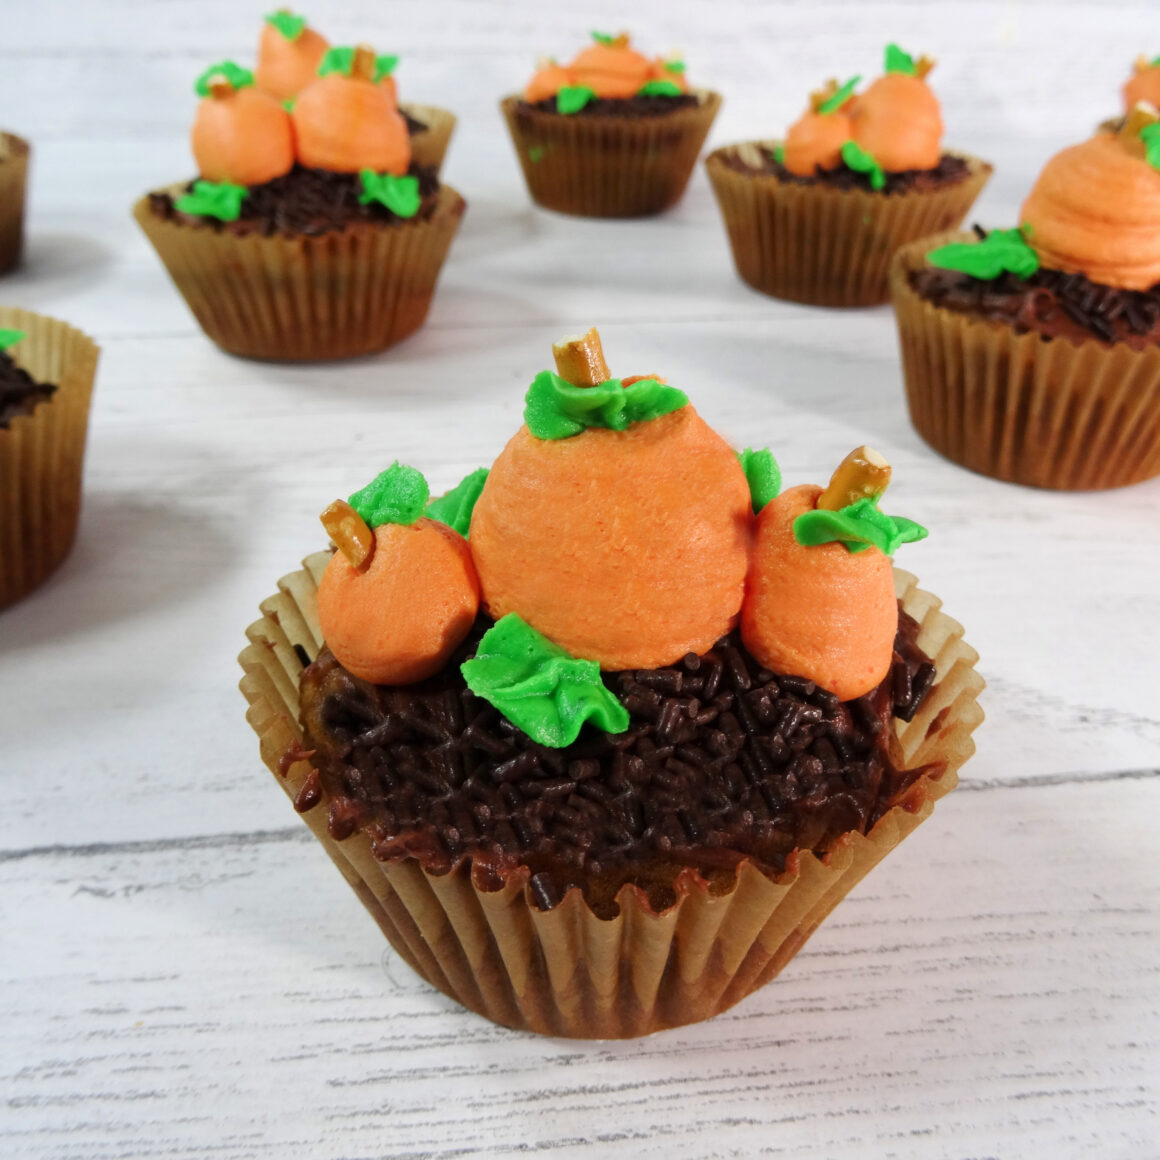 How to Decorate Pumpkin Patch Cupcakes by Champagne and Sugarplums